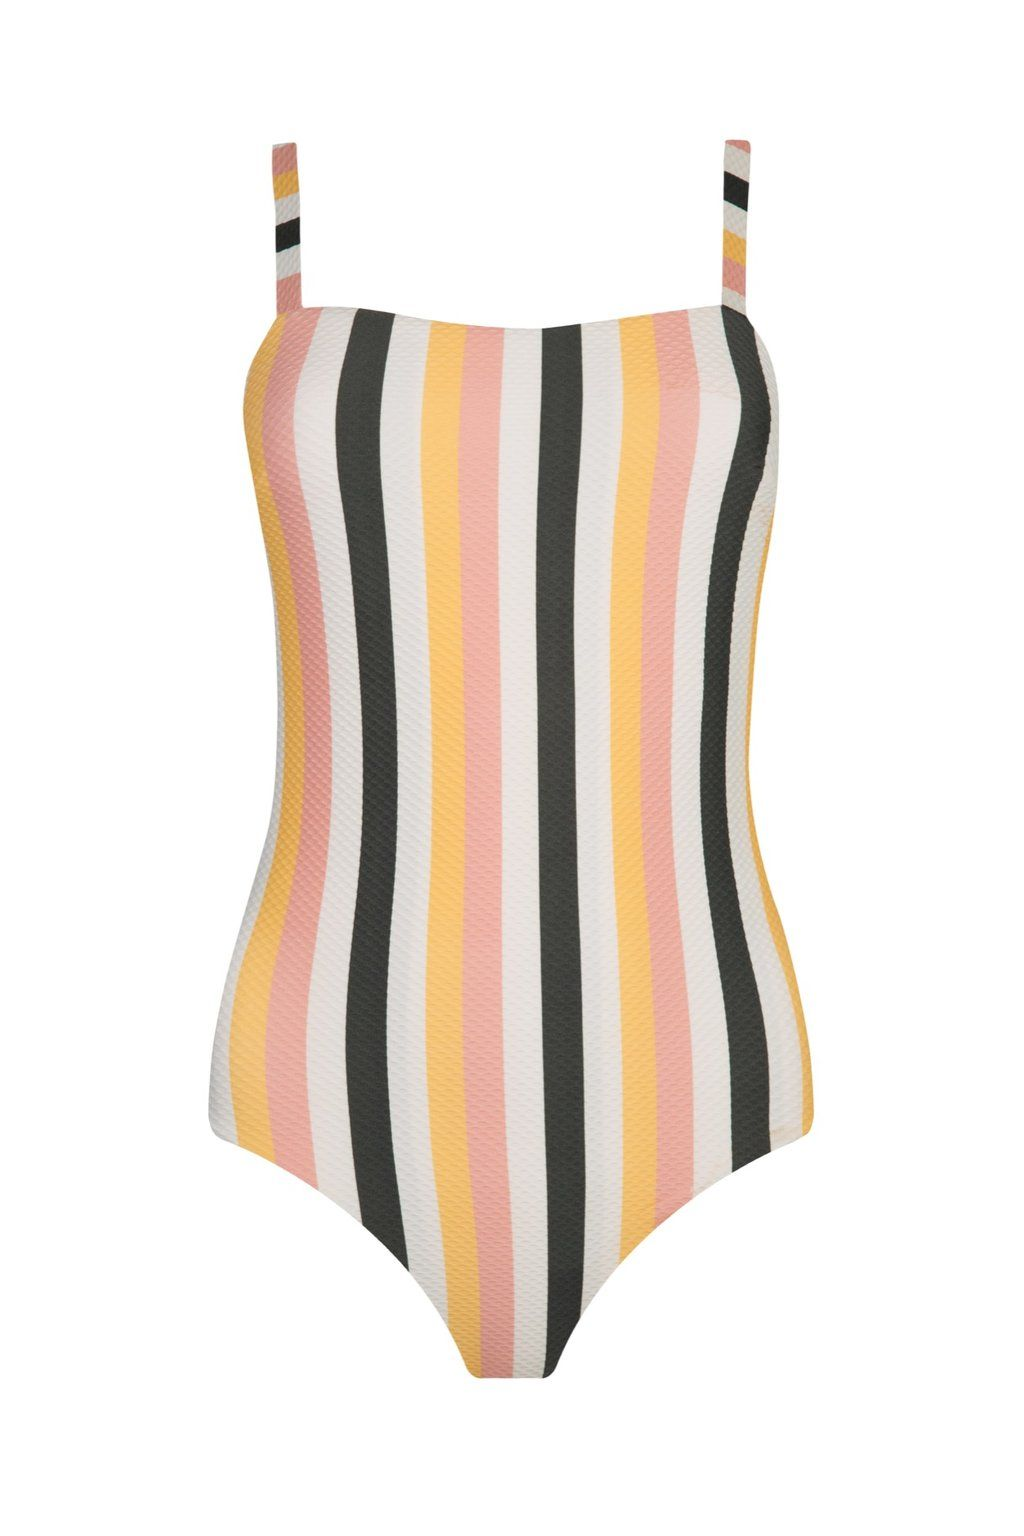 7bb1057c1 10+ Hottest Swimwear Brands 2019 - Designer Bathing Suits to Try Now